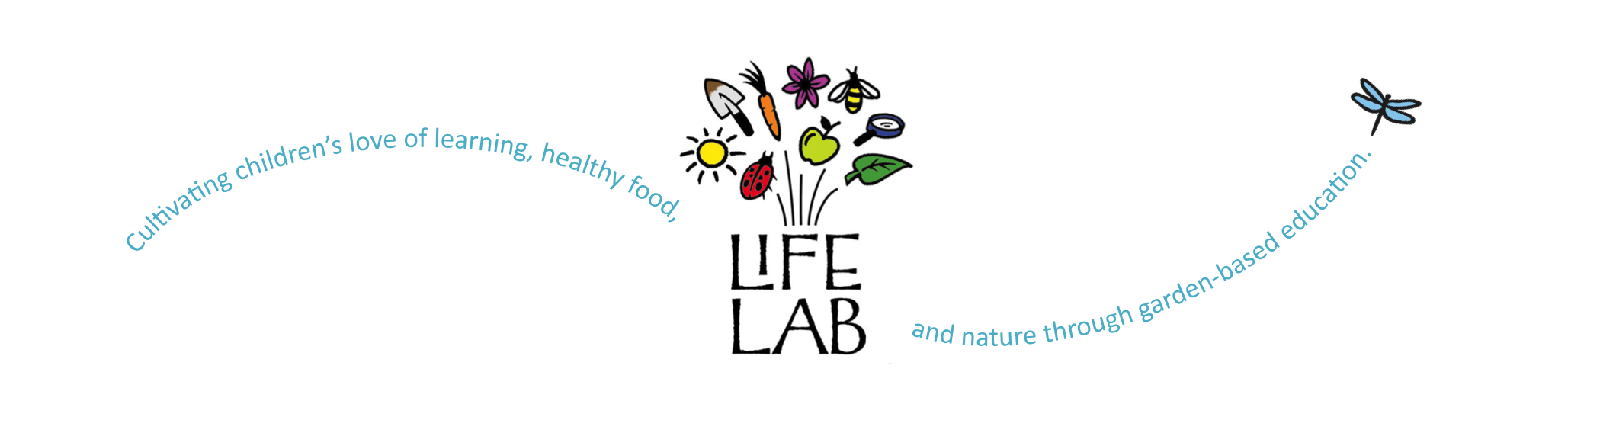 Cultivating children's love of learning, healthy food, and nature through garden-based programs.